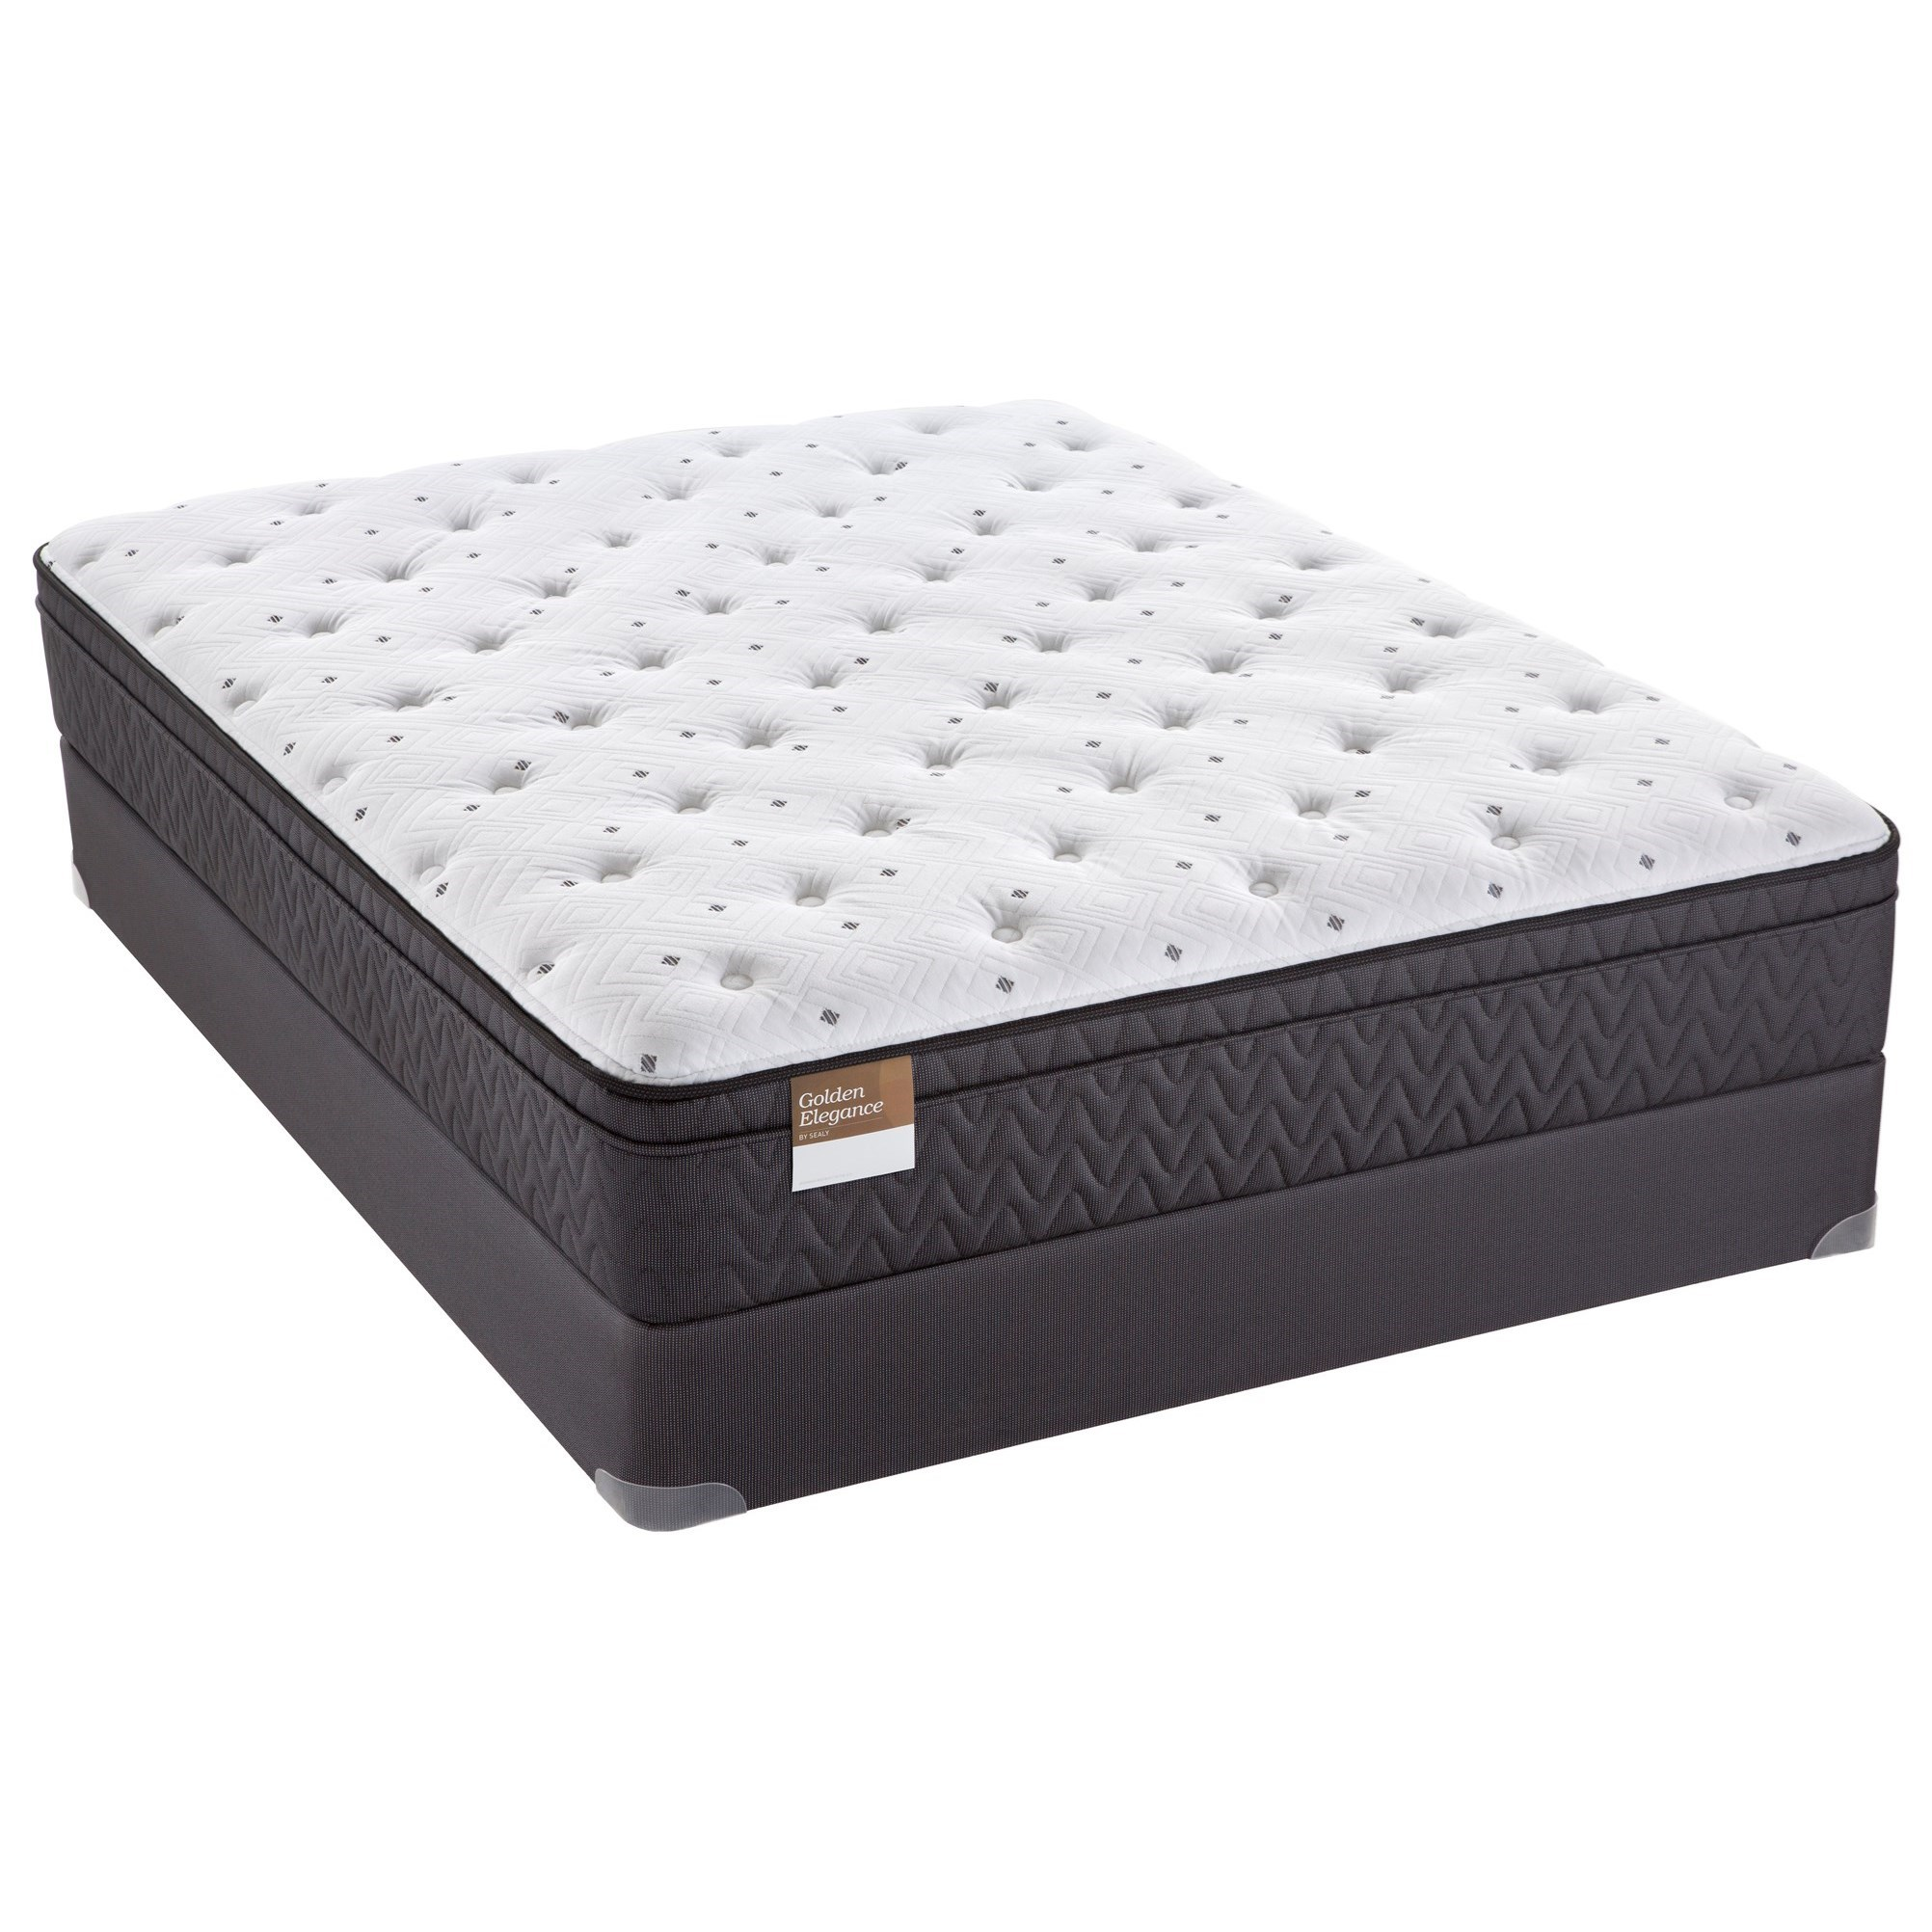 sealy s2 euro top plush twin extra long 12 euro top plush mattress and 9 supportflex. Black Bedroom Furniture Sets. Home Design Ideas